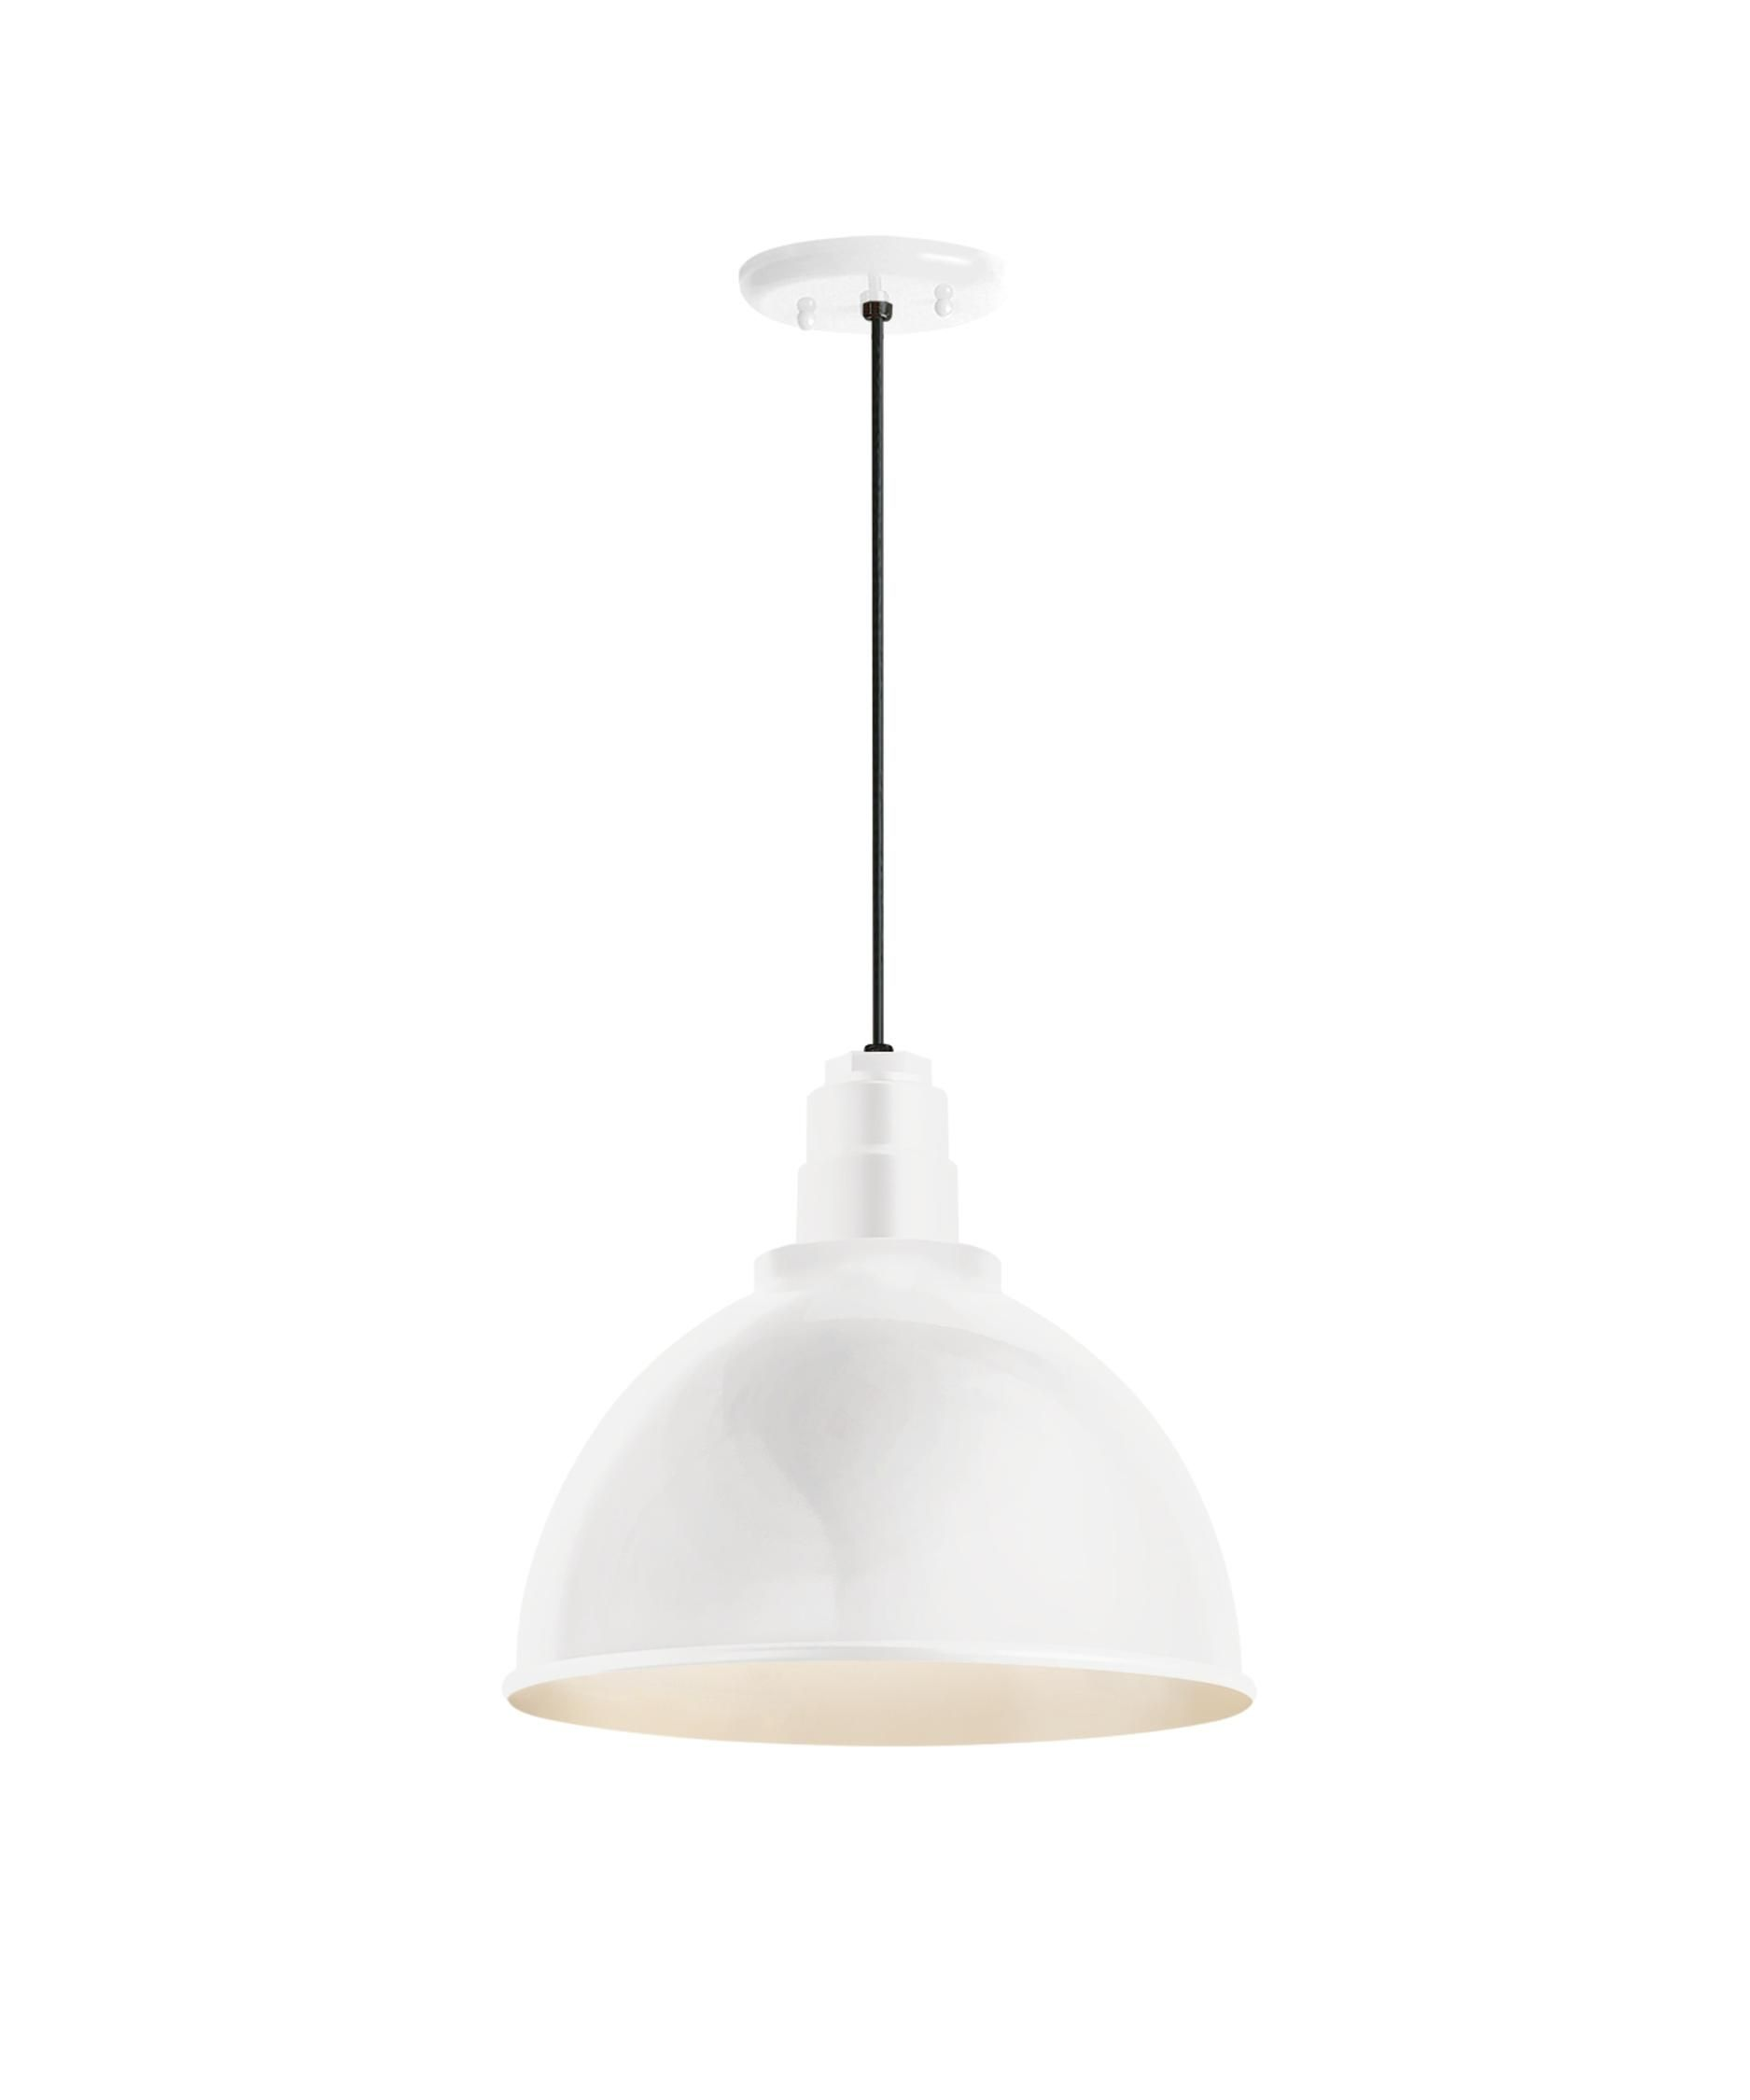 Troy lighting drd deep reflector inch large pendant st